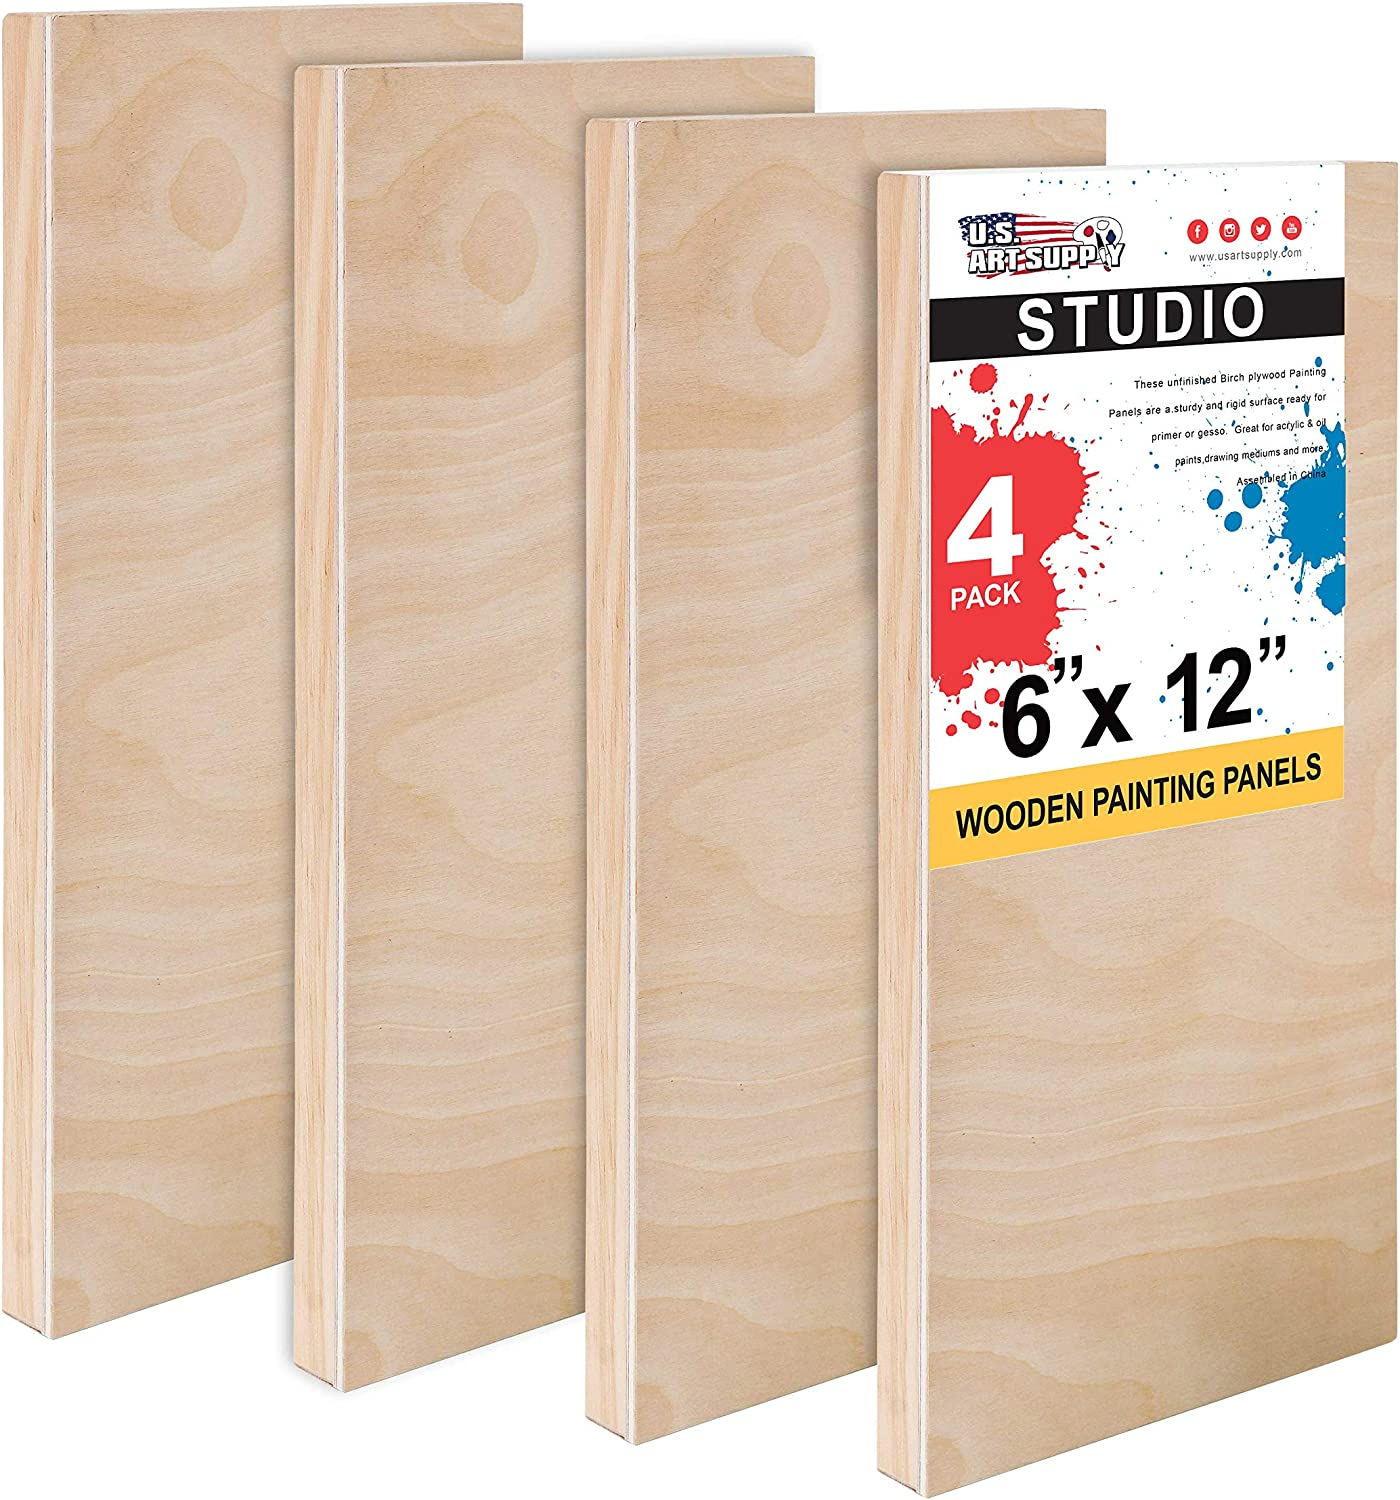 U.S Acrylic Pack of 2 Epoxy Pouring - Artist Depth Wooden Wall Canvases Art Supply 36 x 48 Birch Wood Paint Pouring Panel Boards Painting Mixed-Media Craft Oil Gallery 1-1//2 Deep Cradle